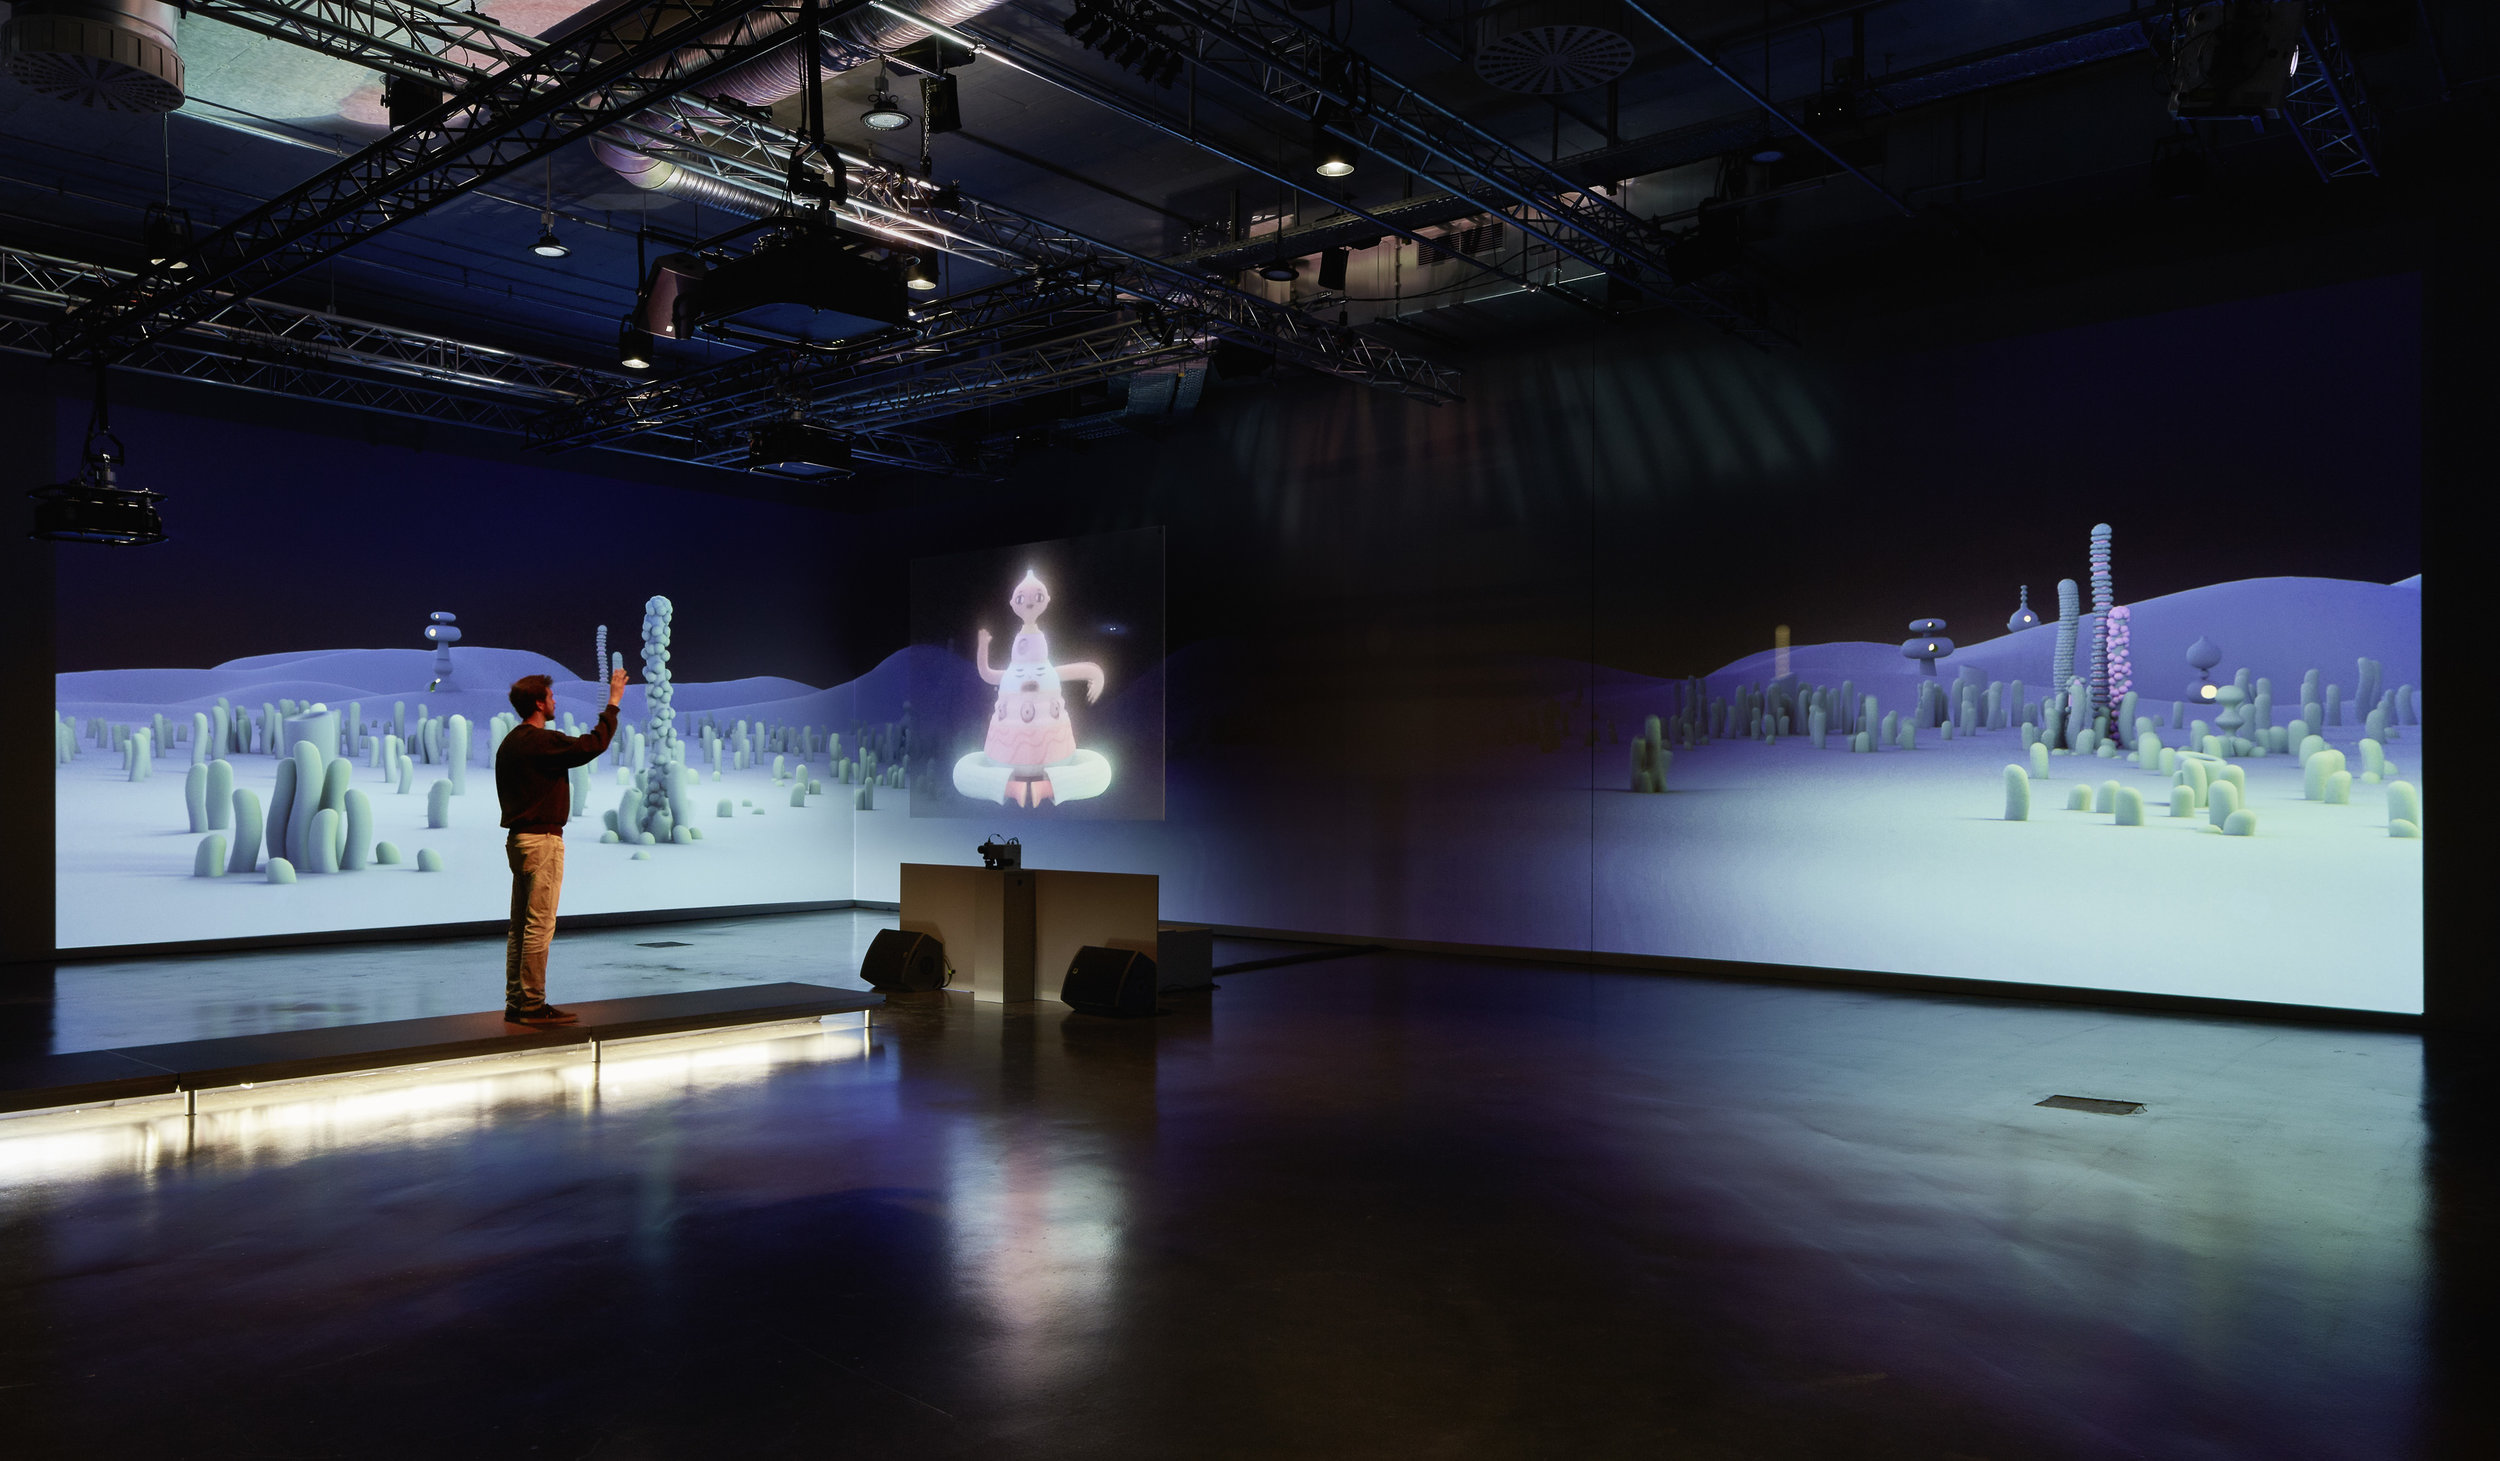 Visitors could approach the hologram one at a time on a elevated catwalk. Sensors detected proximity and the frequency of a user's movement. Using this data, the projected character would grow, retract and engage in different behaviours.